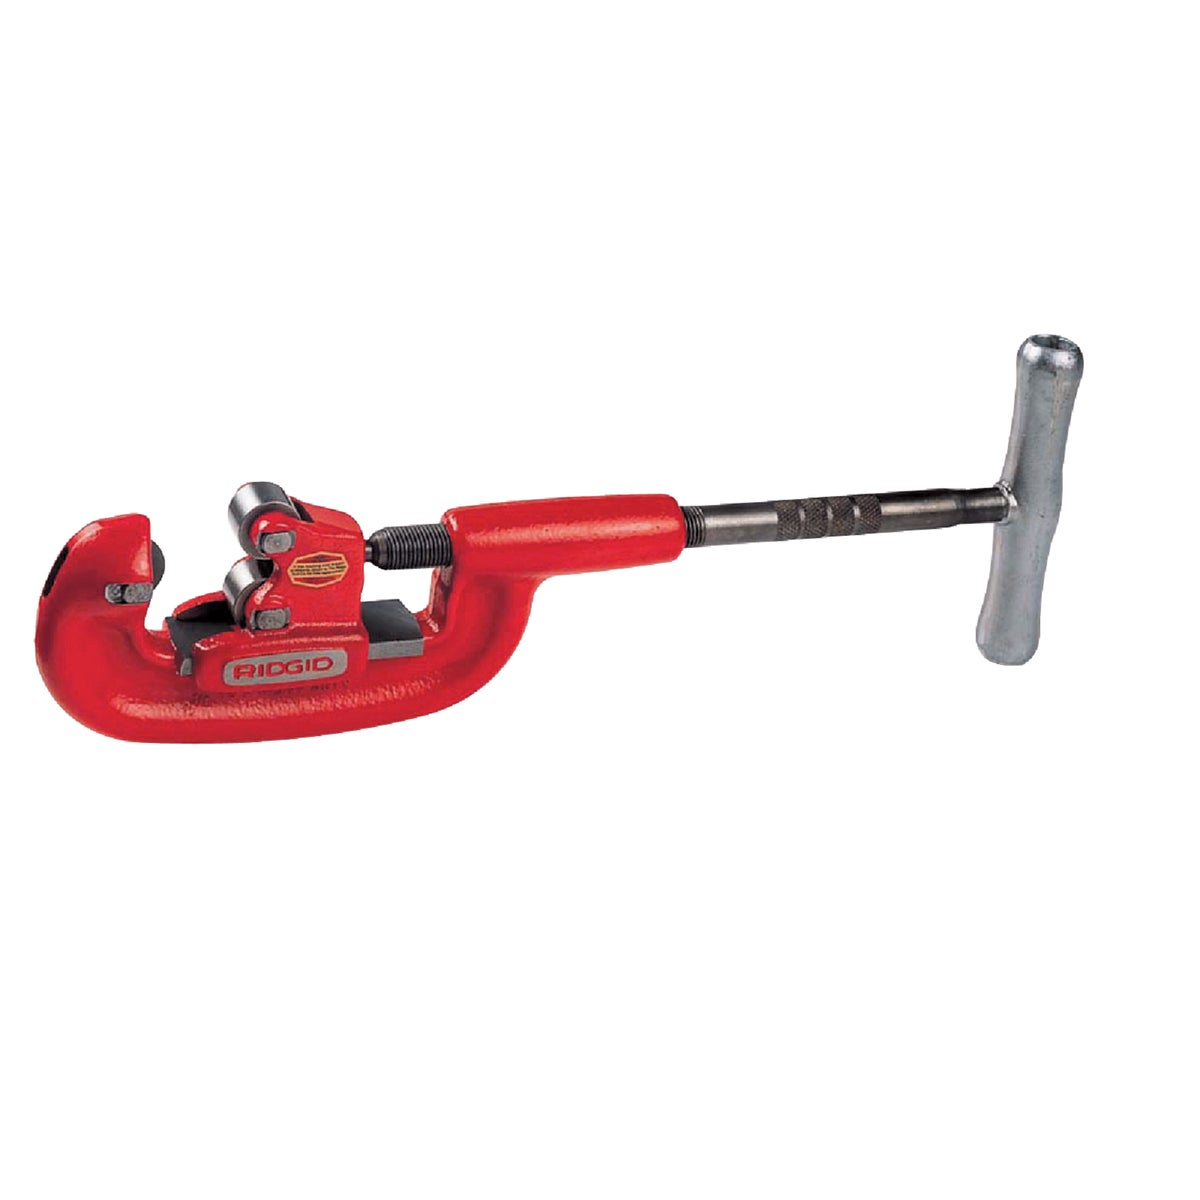 1/8-2 PIPE CUTTER - 32820 by Ridge Tool Co